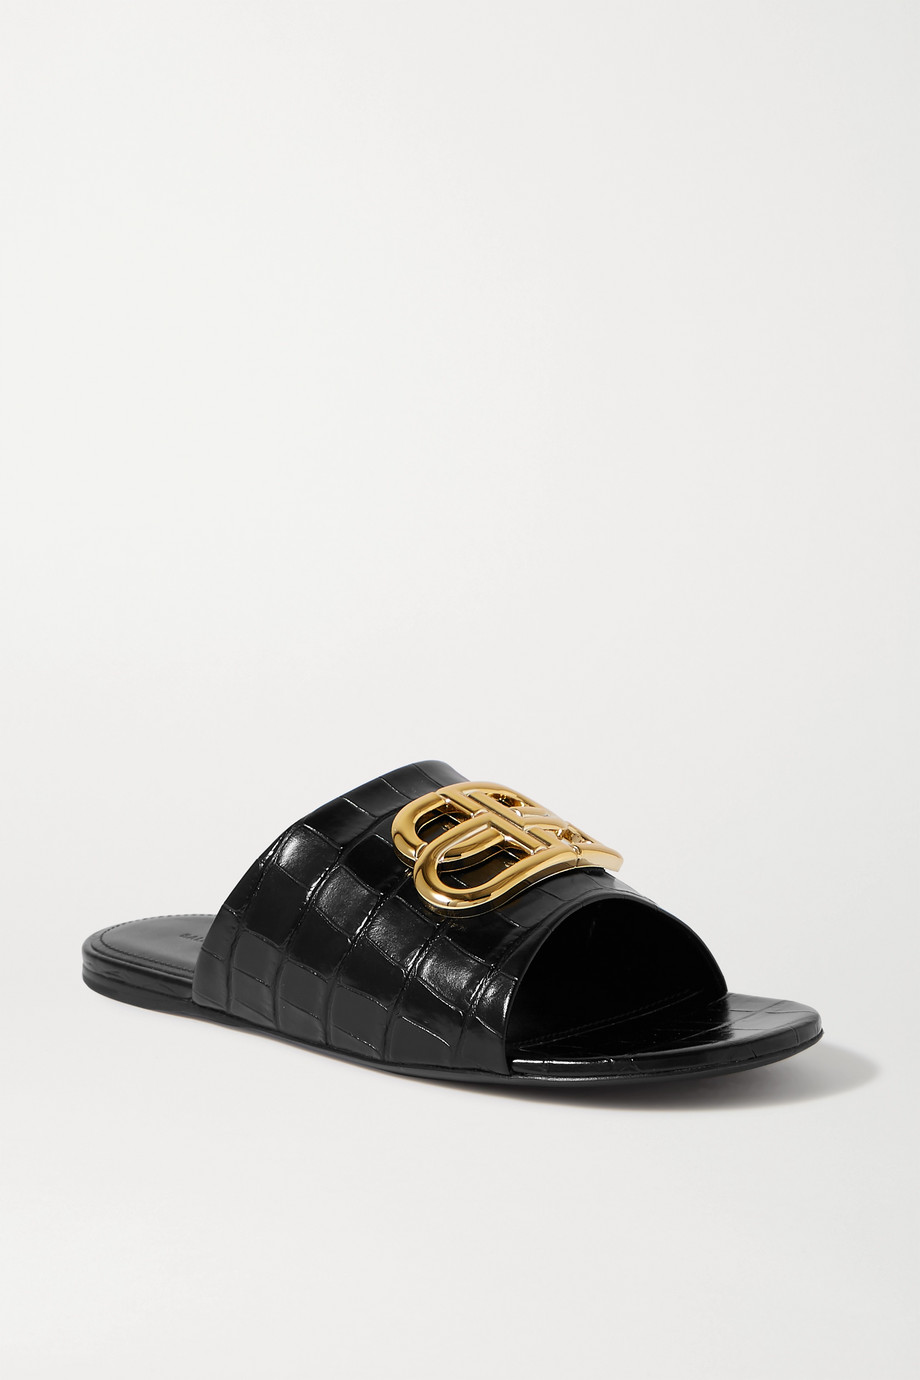 Balenciaga Oval BB logo-embellished croc-effect leather slides